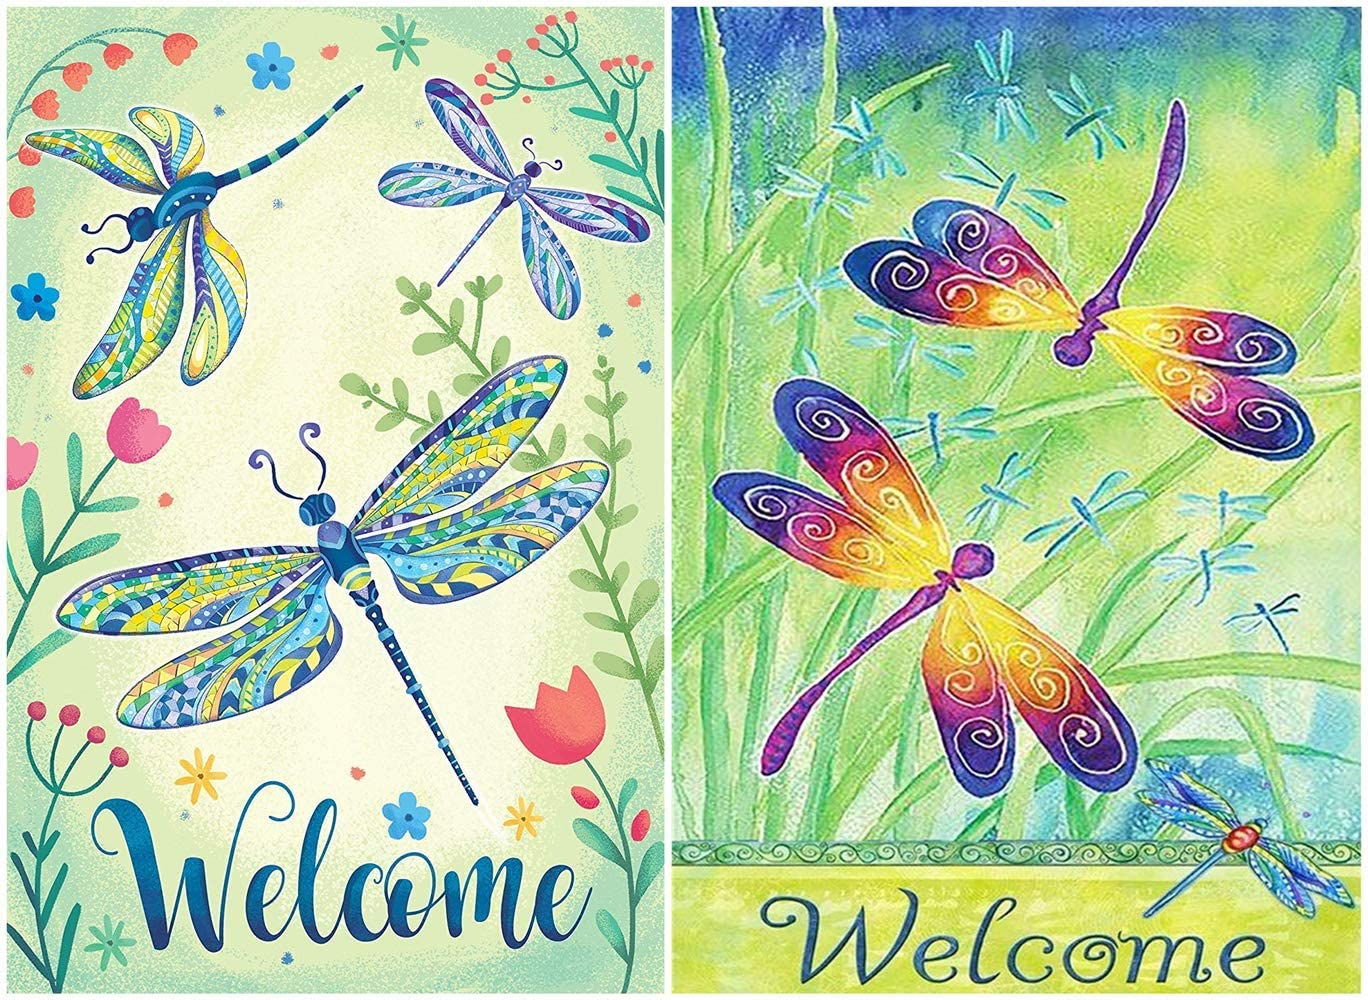 Welcome Spring Summer Dragonfly Butterfly Flowers Double Sided Garden Yard Flag, Hello Spring Summer Floral Flying Dragonfly Grass Decorative Garden Flag Banner for Outdoor Home Decor Party 12.5 x 18